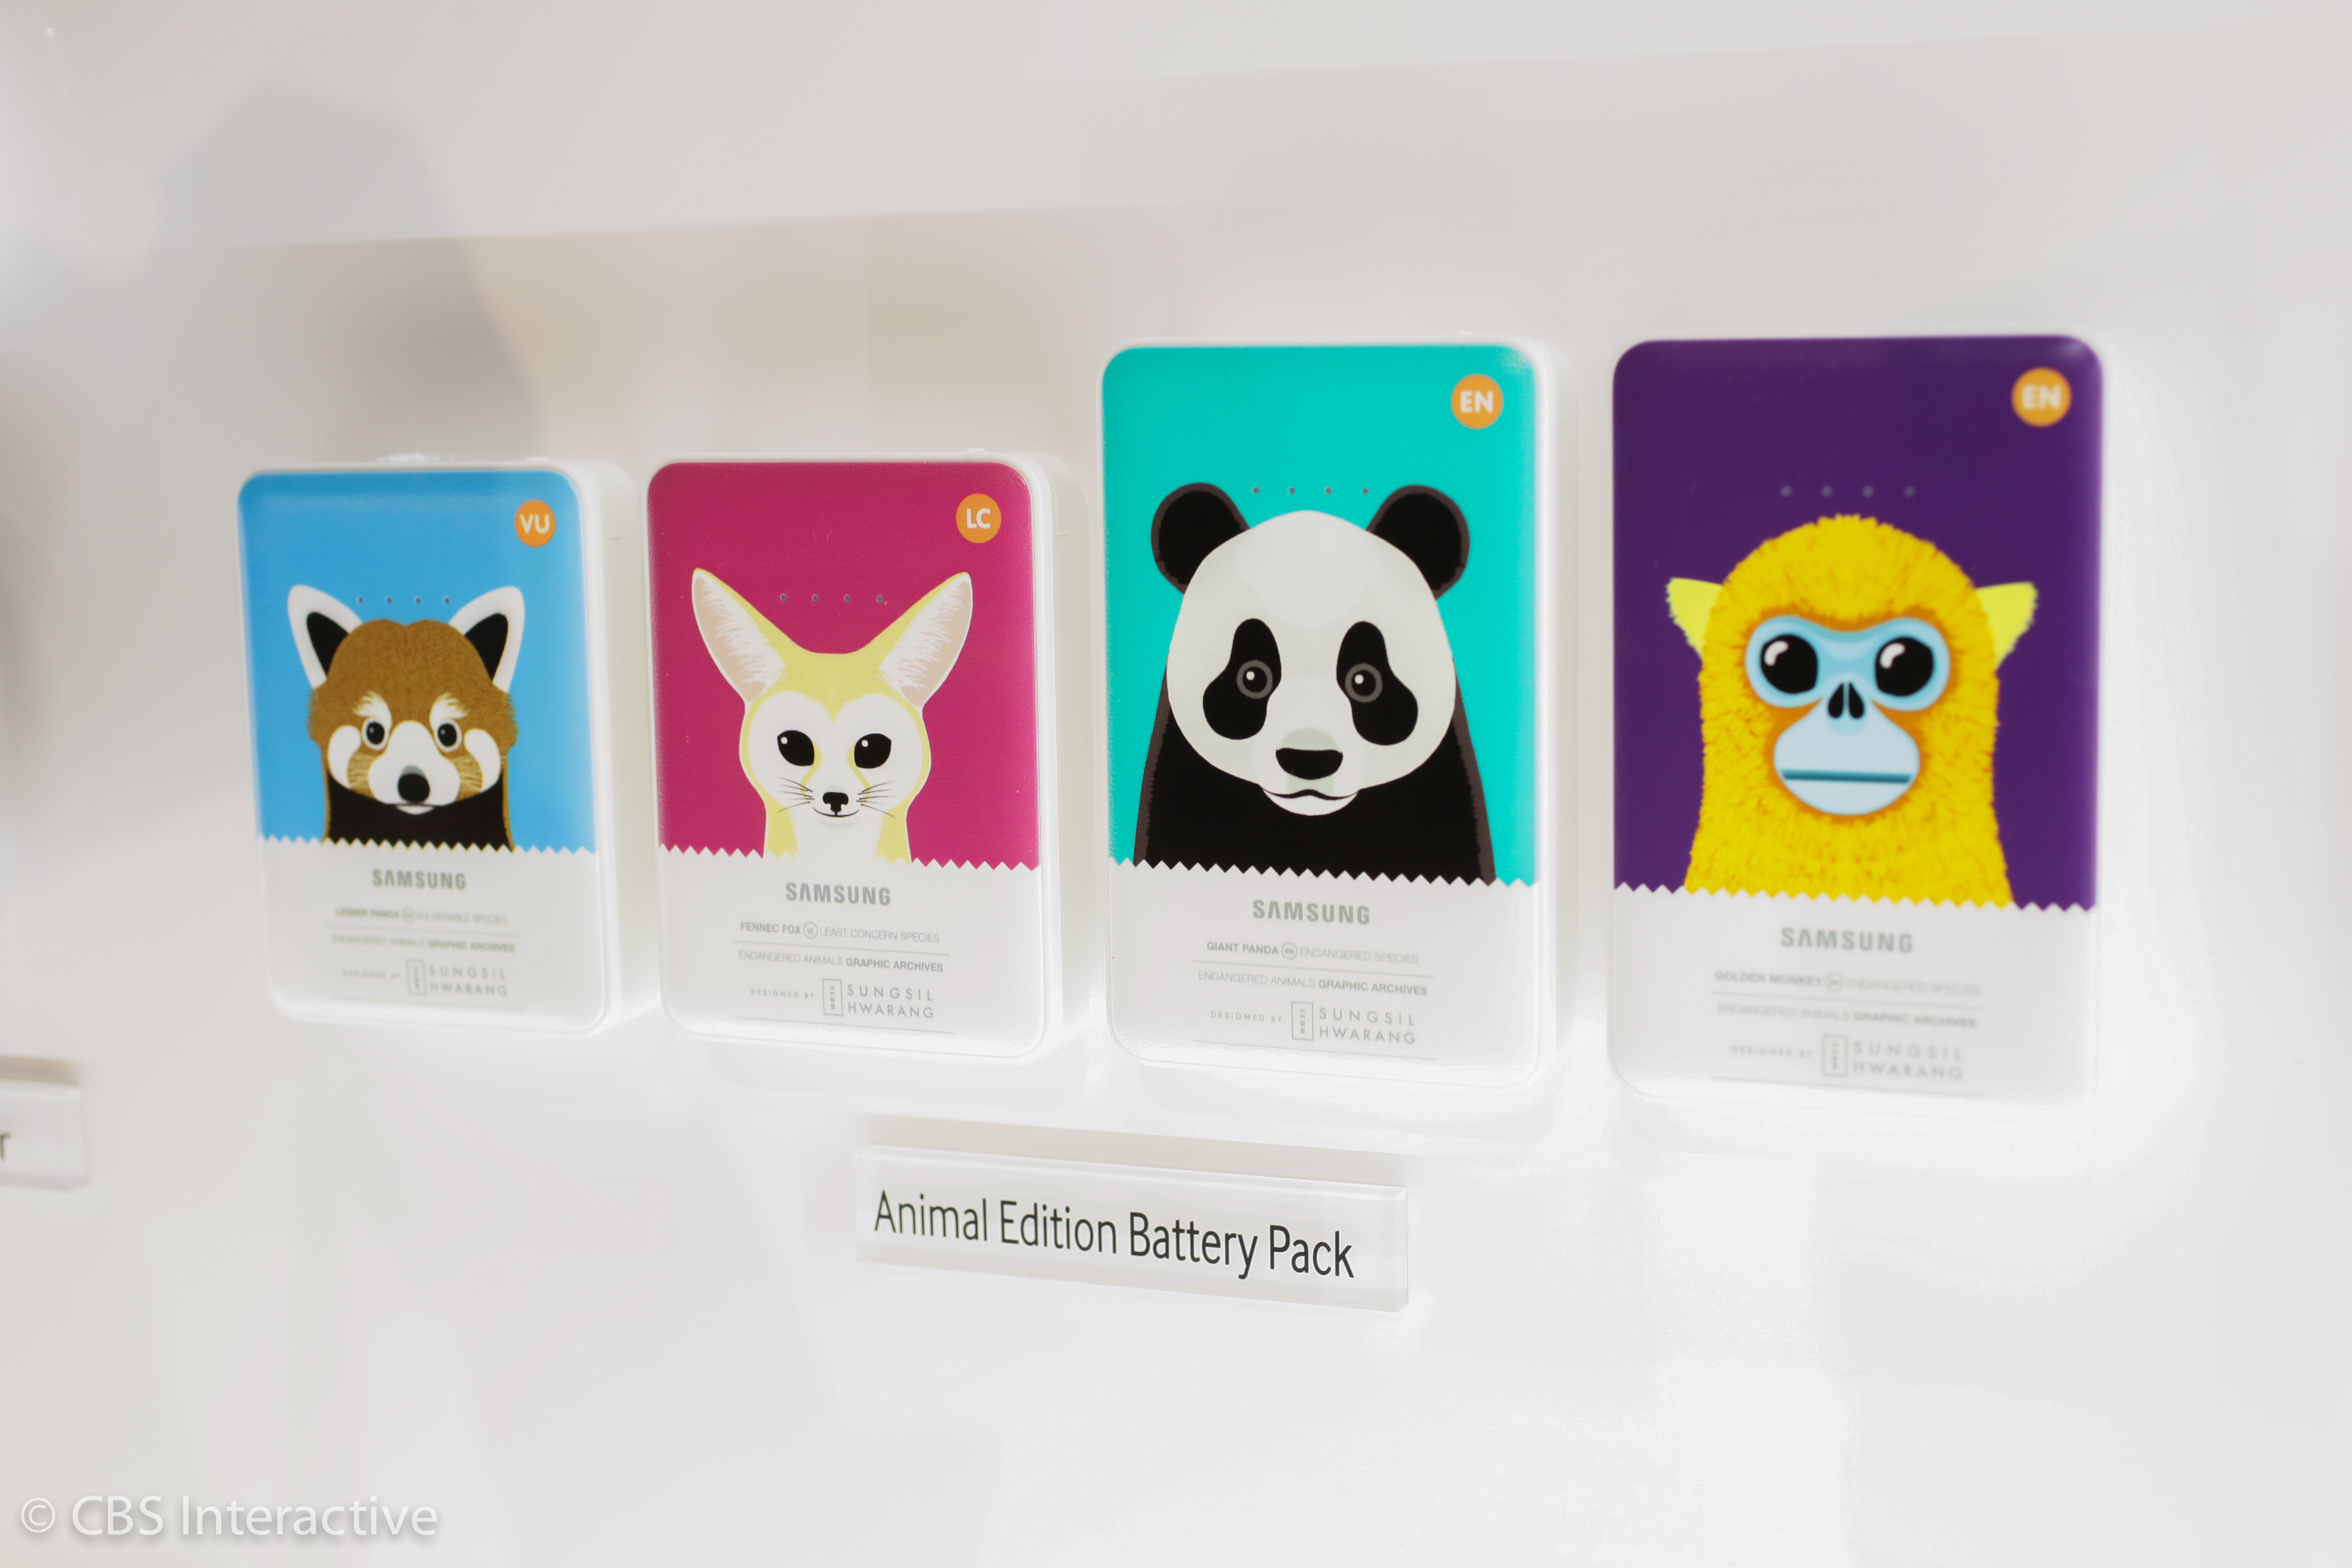 Animal Edition Battery Pack